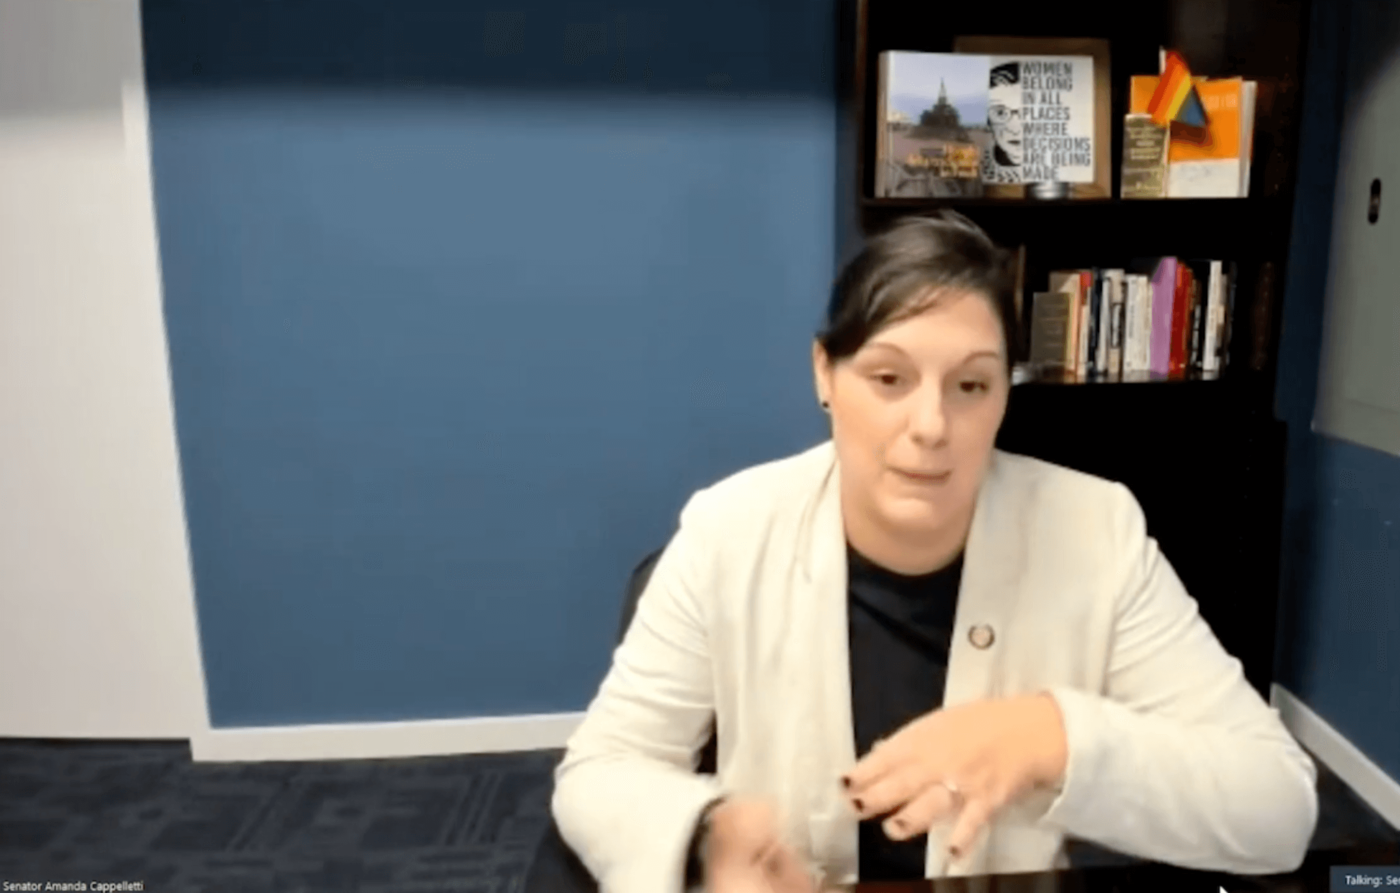 State Sen. Amanda M. Cappelletti (D-Montgomery) speaks during a virtual public hearing on the need for workplace accommodations for pregnant and postpartum Pennsylvanians.